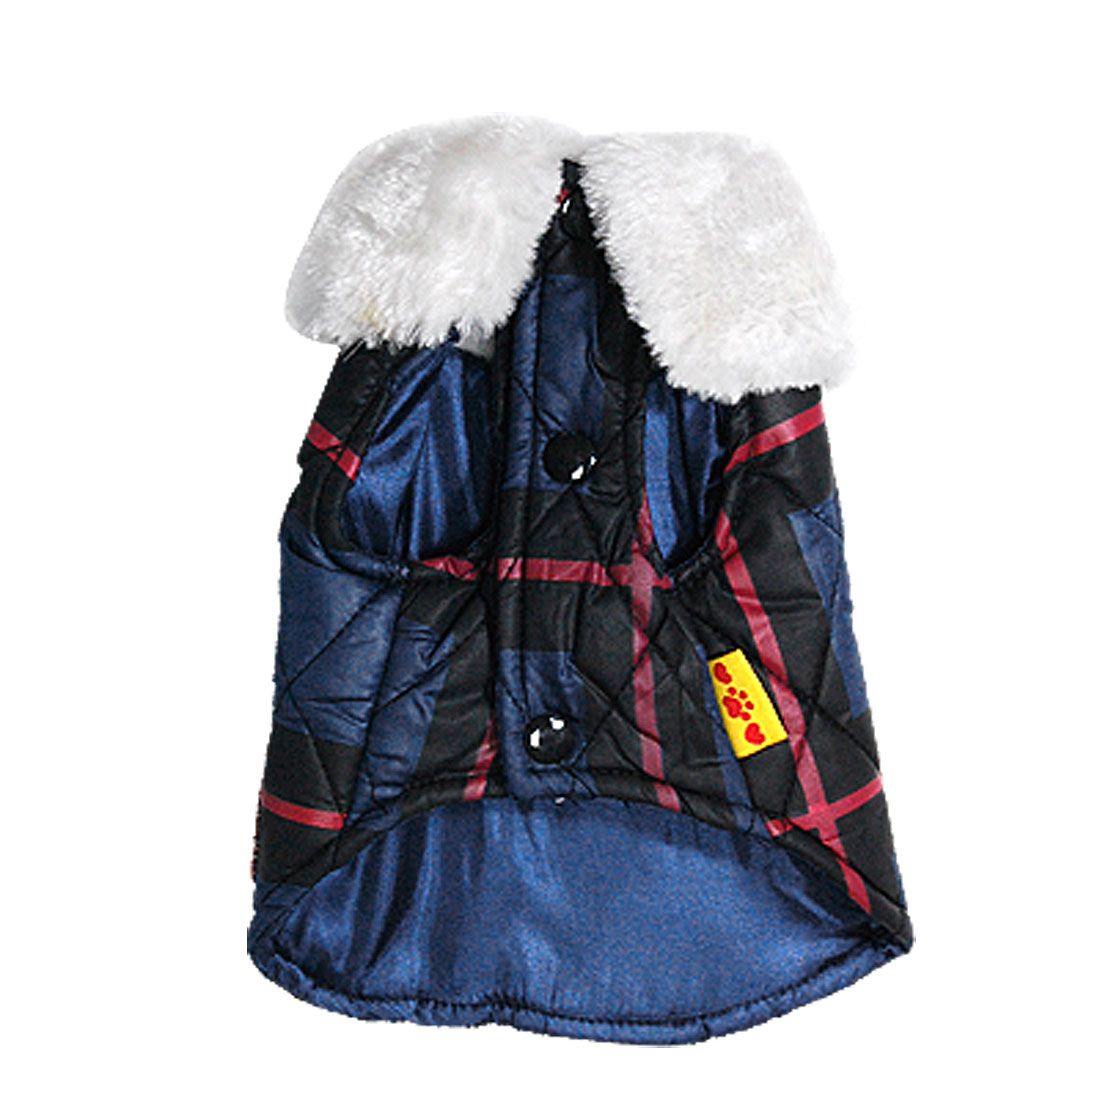 Small Cute Dark Blue Winter Pet Dog Yokrie Apparel Warm Coat Jacket Vest Size XS